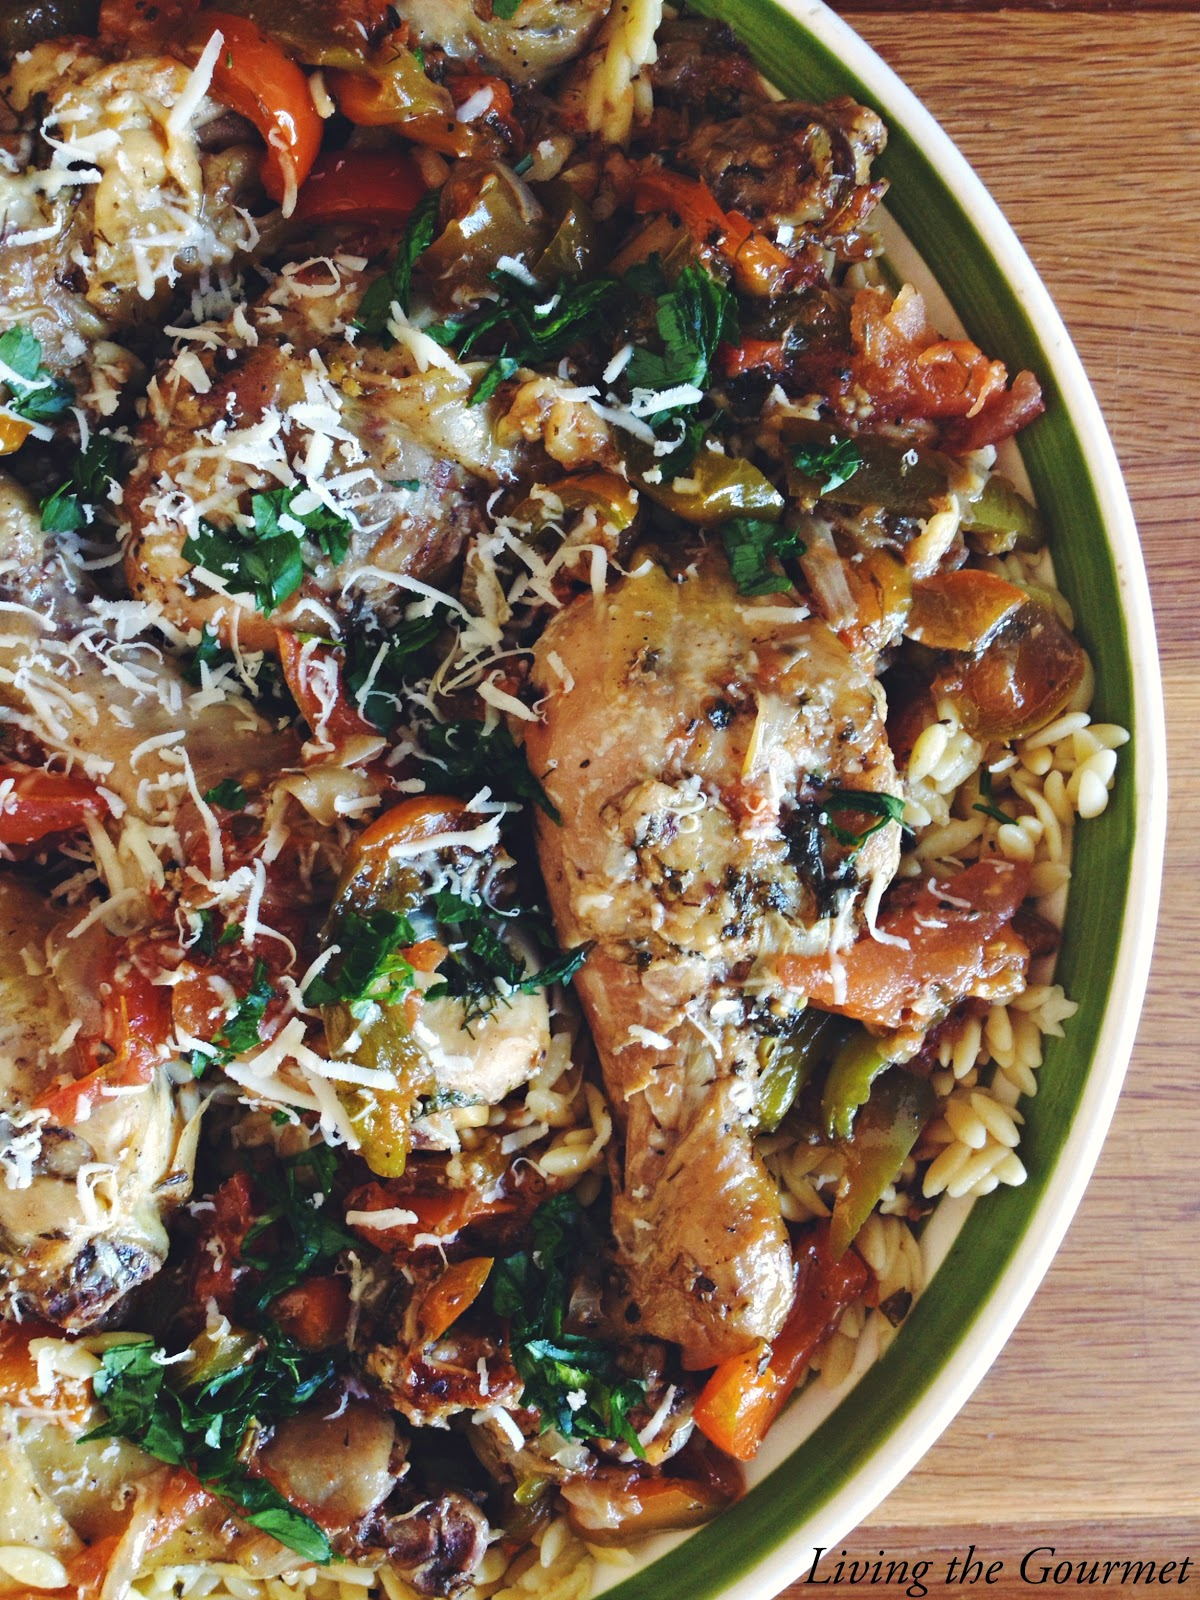 Greek Style Chicken with Orzo, shared by Living the Gourmet